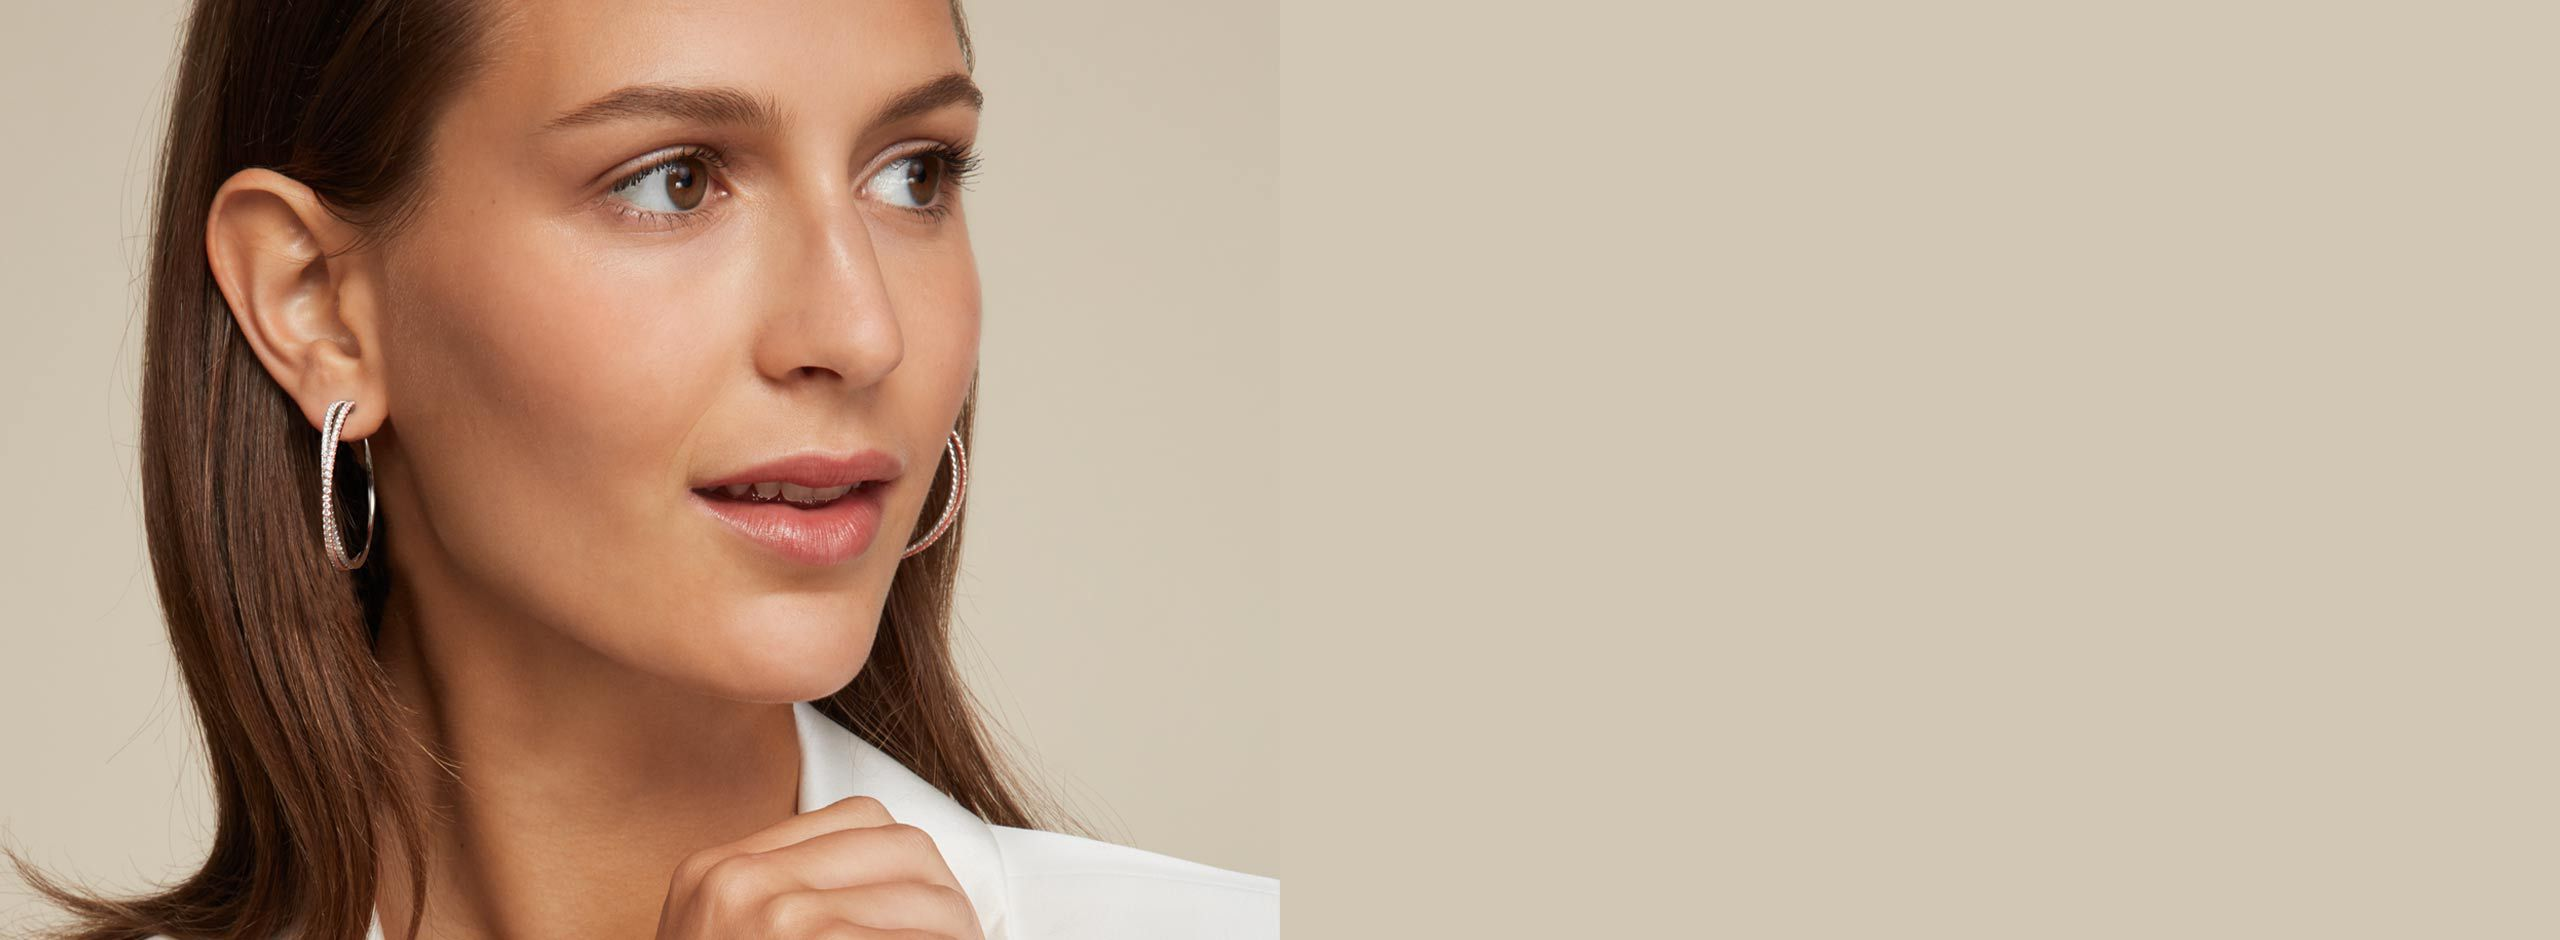 Side Profile of Woman Wearing Double Hoop Diamond Earrings